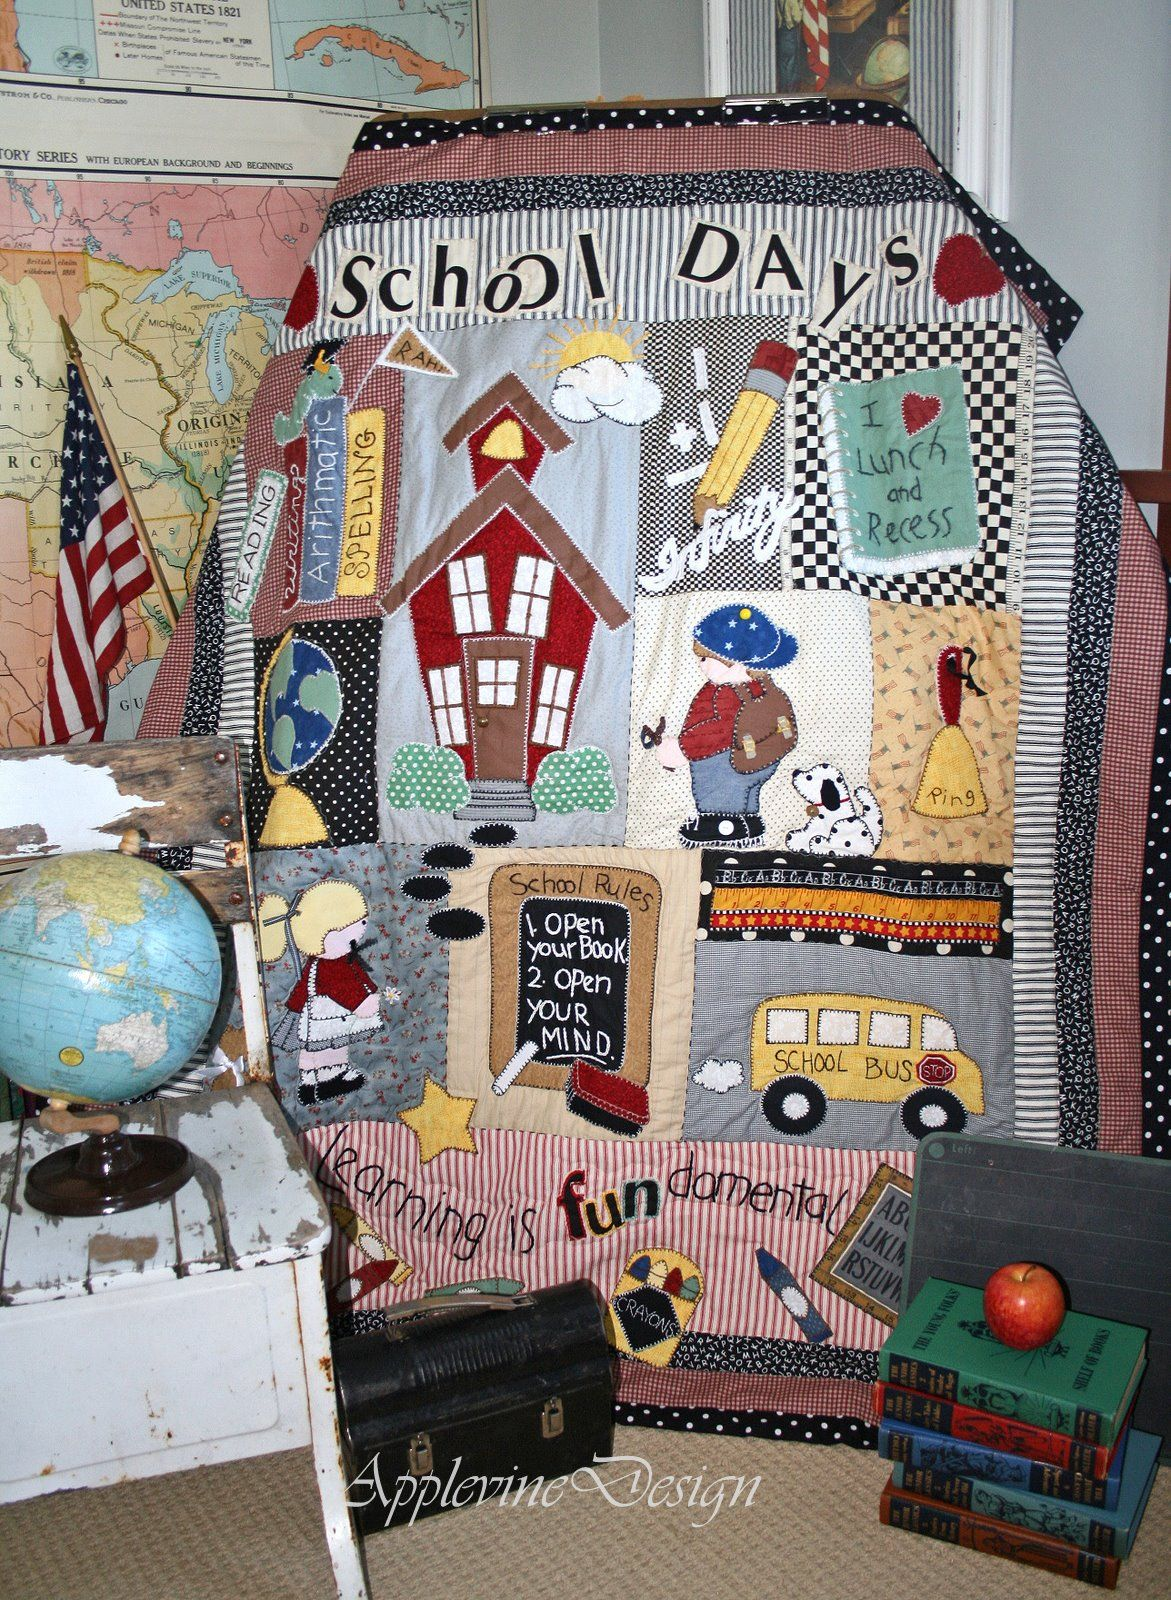 Wall Hanging Quilt Patterns back to school wall hanging quilt pattern - google search | wk